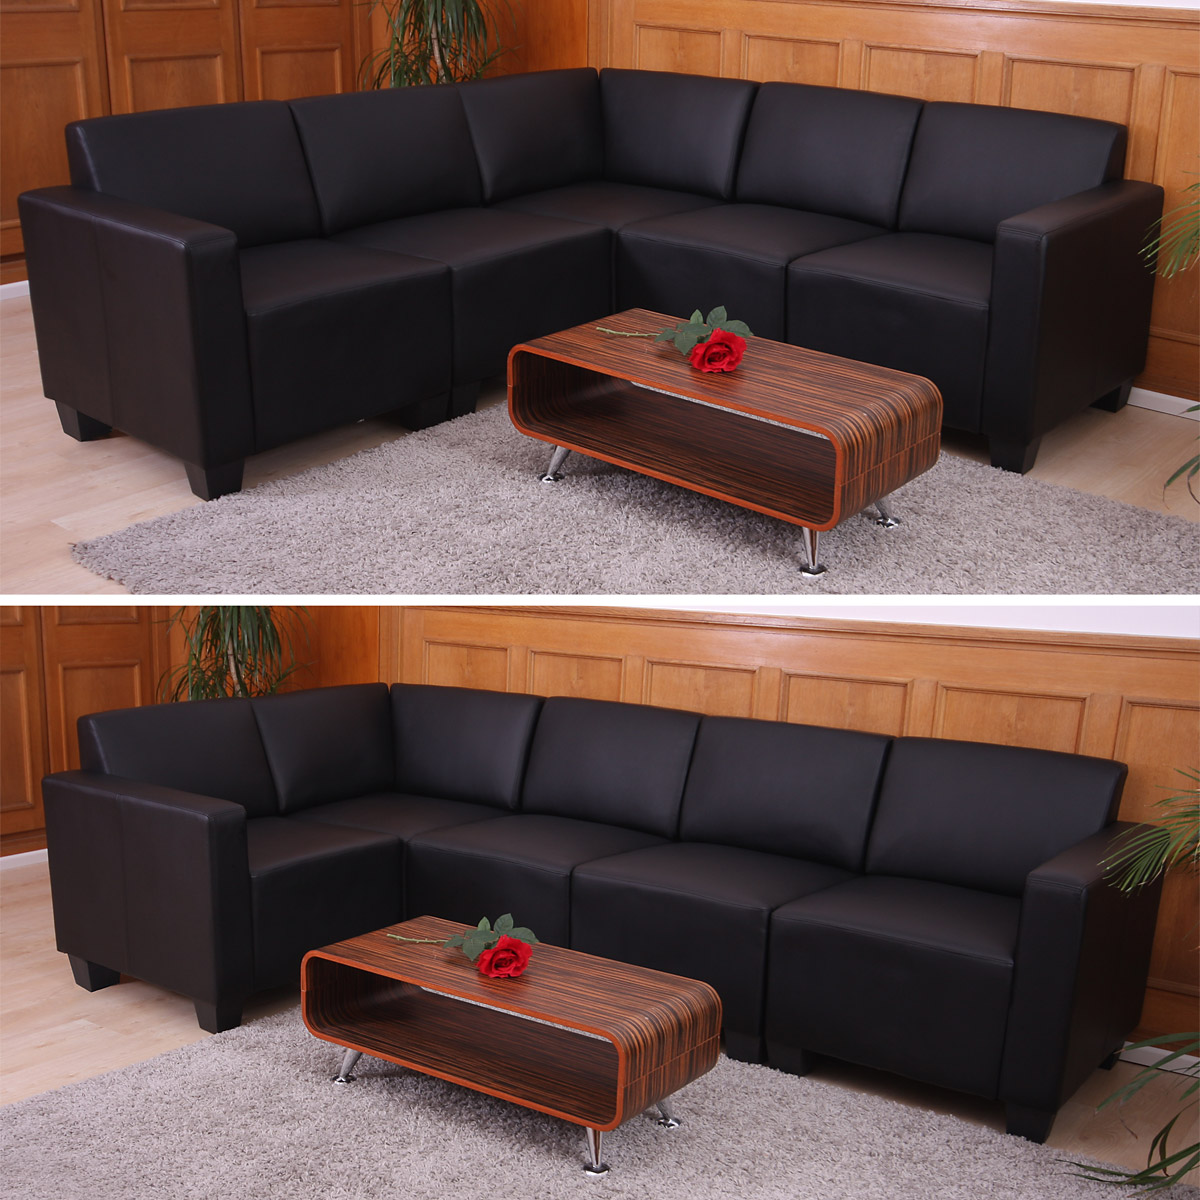 modular sofa system couch garnitur lyon 5 kunstleder schwarz. Black Bedroom Furniture Sets. Home Design Ideas